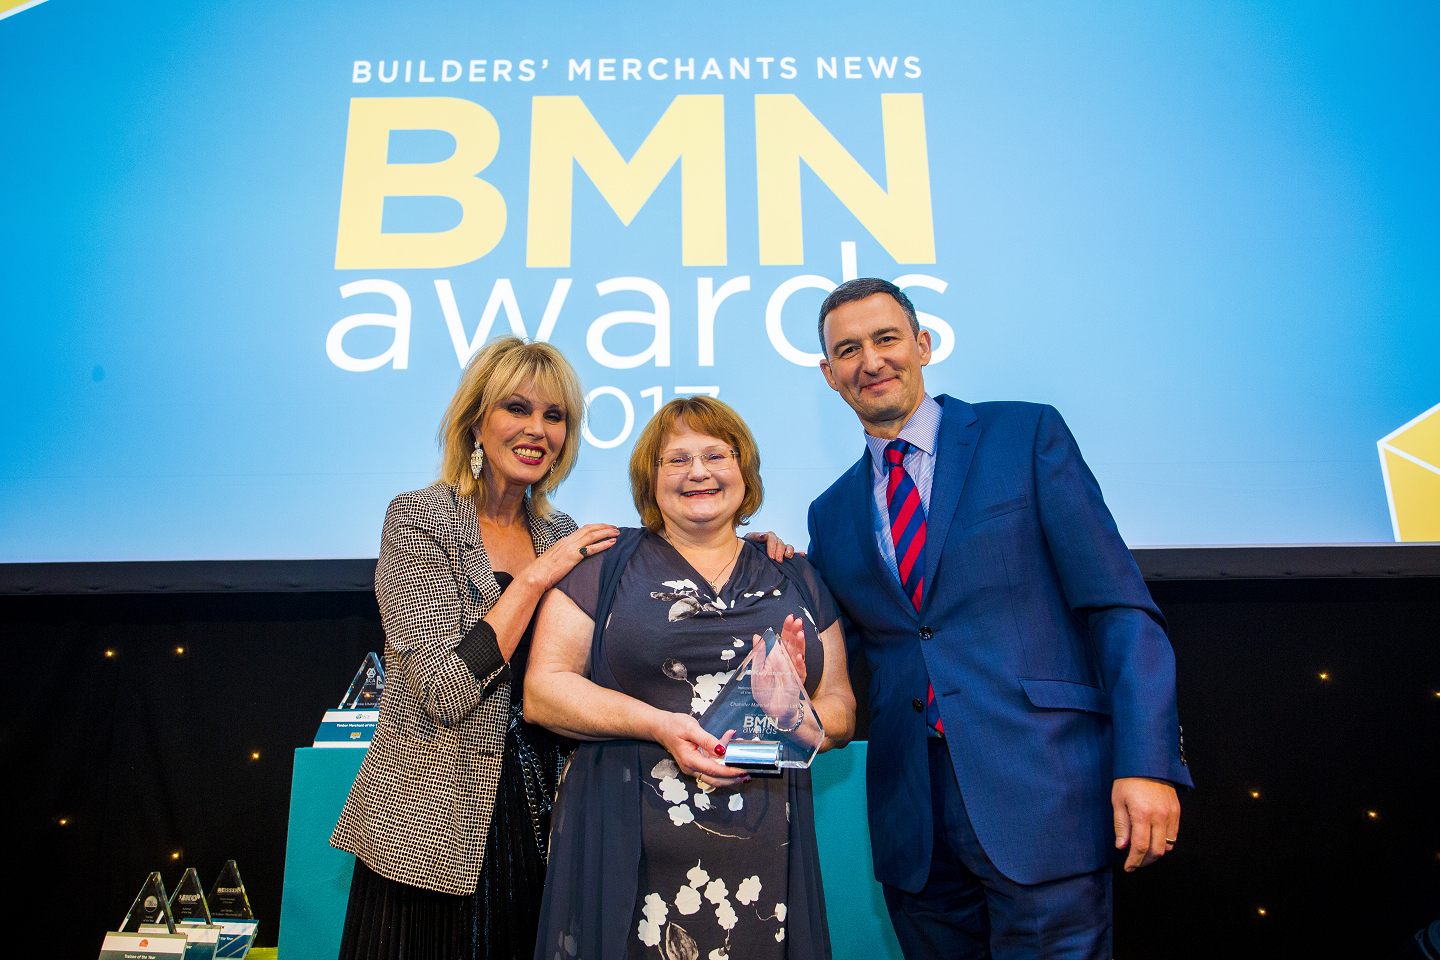 Winner of Independent Builders' Merchant of the Year (1 - 10); Joanna Lumley, Julie Chandler, Managing Director - Chandler Material Supplies Ltd, Adrian Forbes, Group Sales Director - Keystone Group